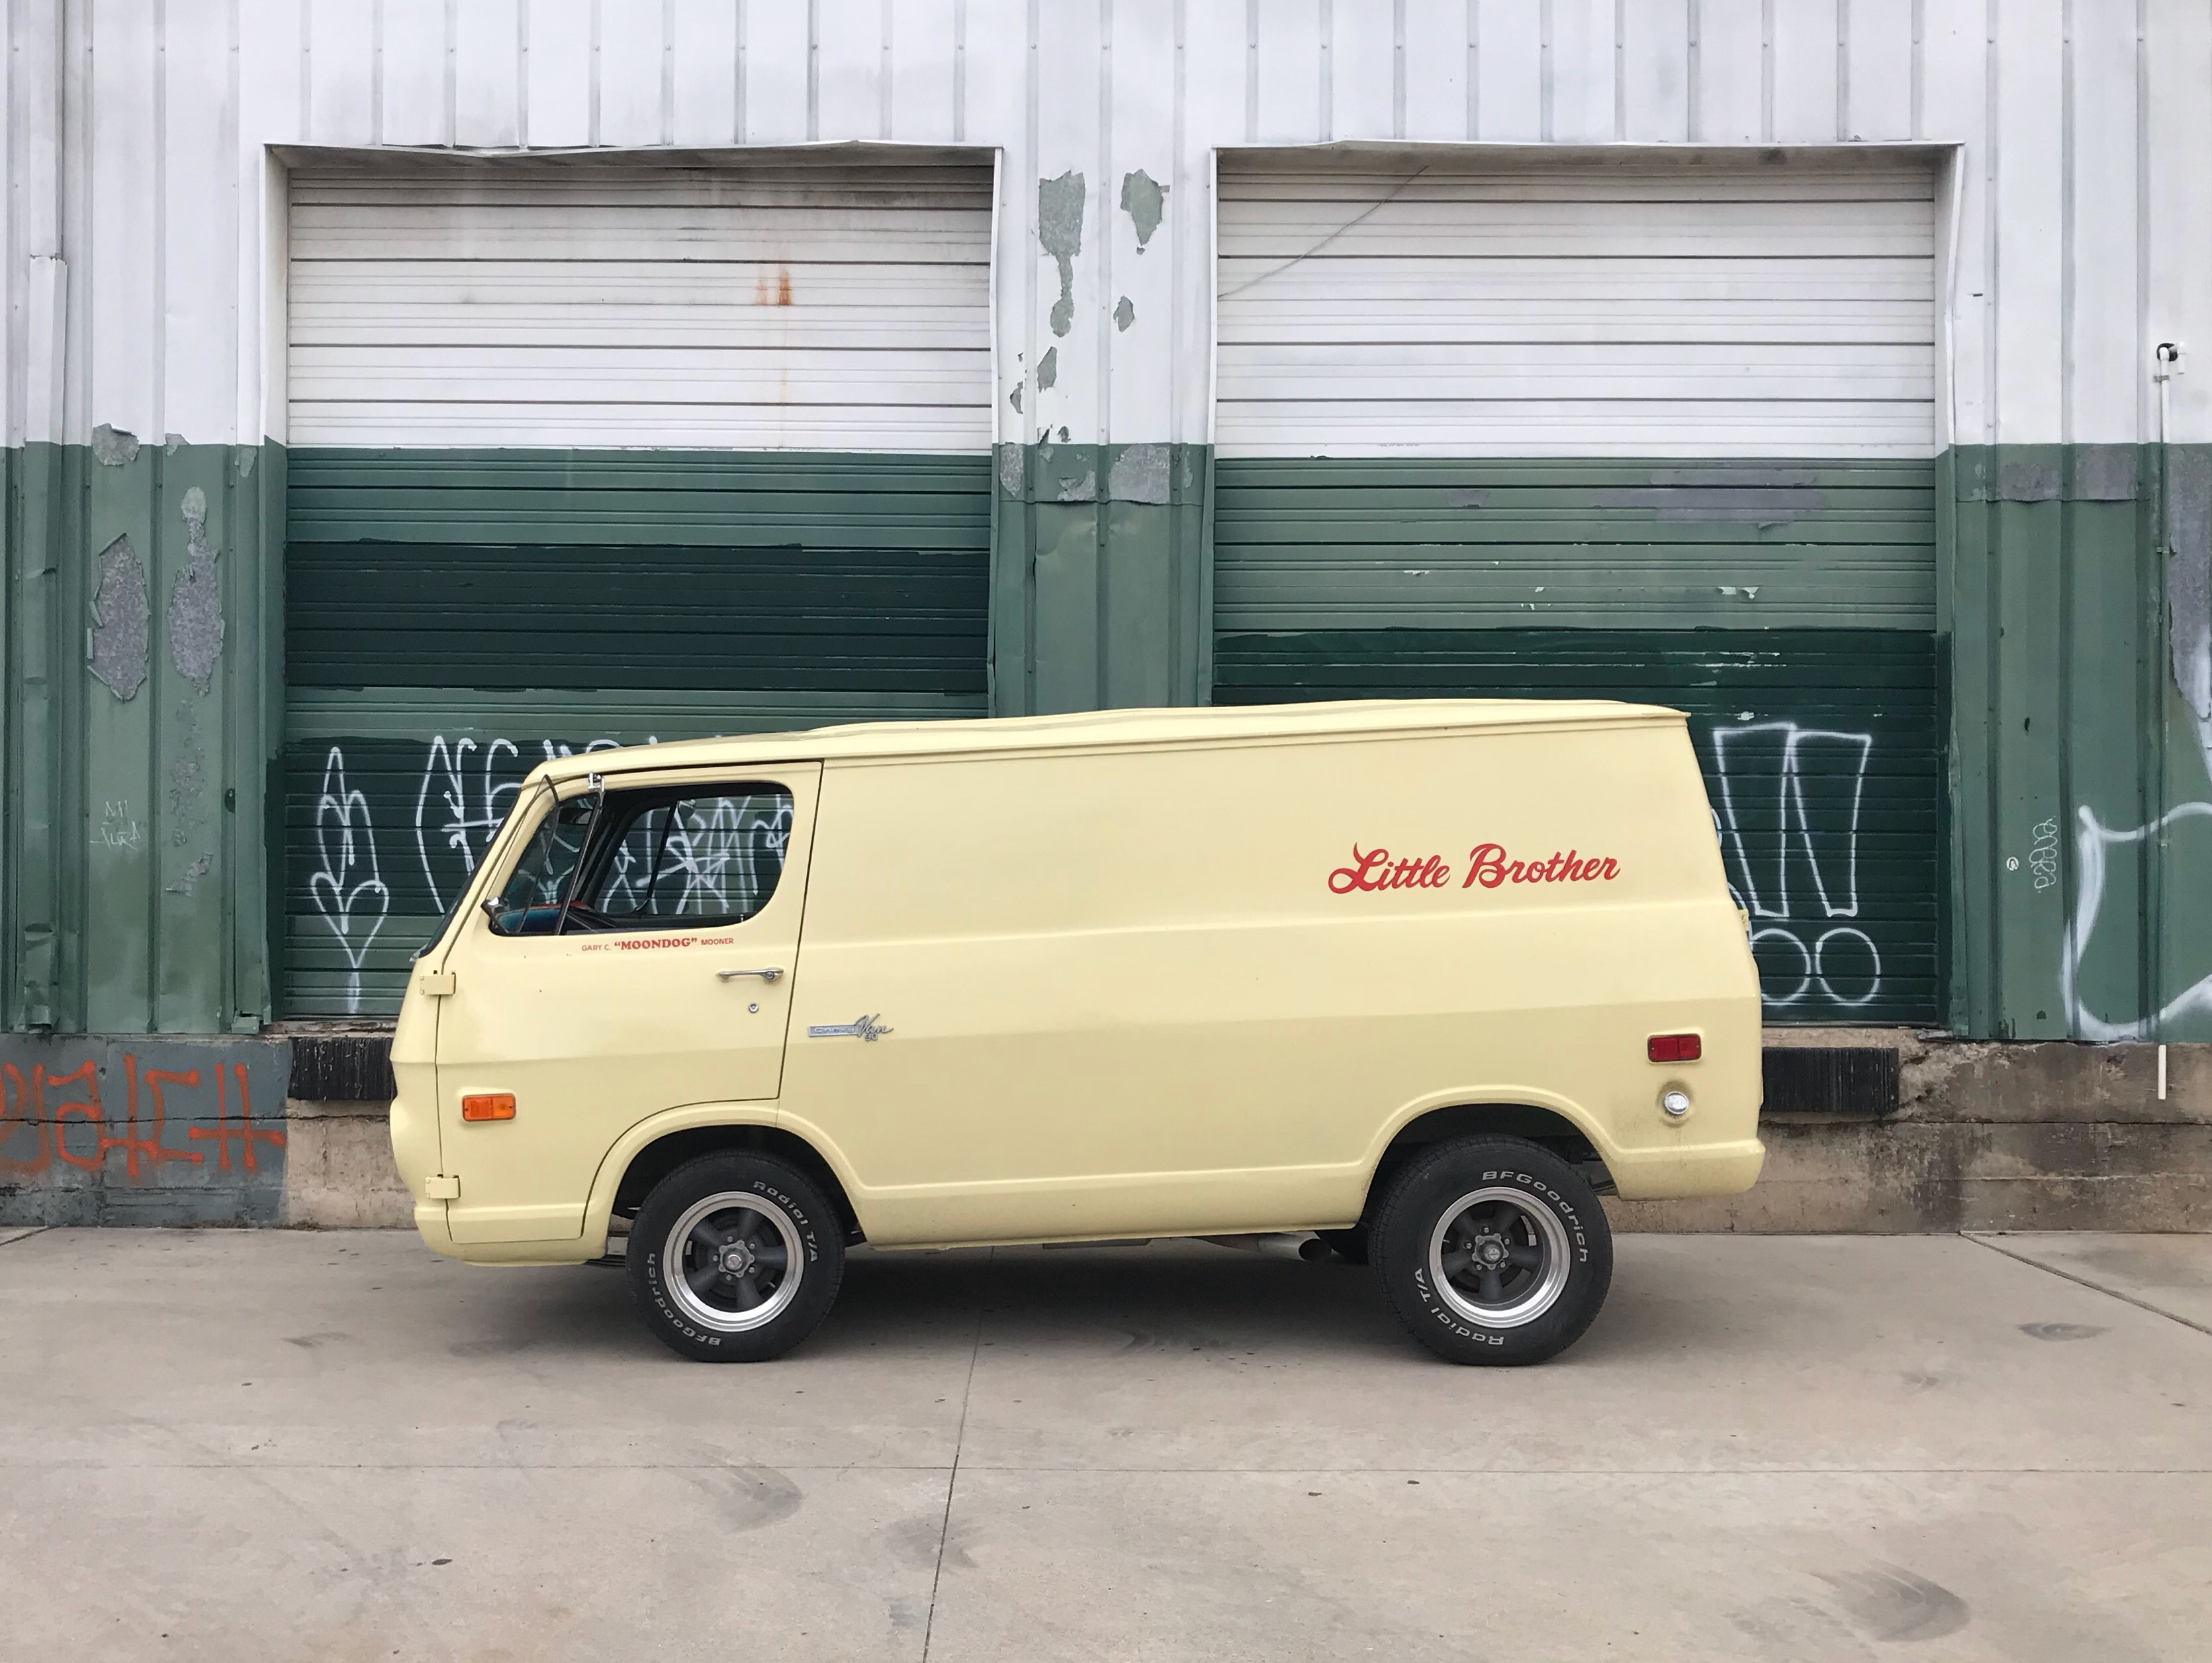 Little Brother's coffee and booze van